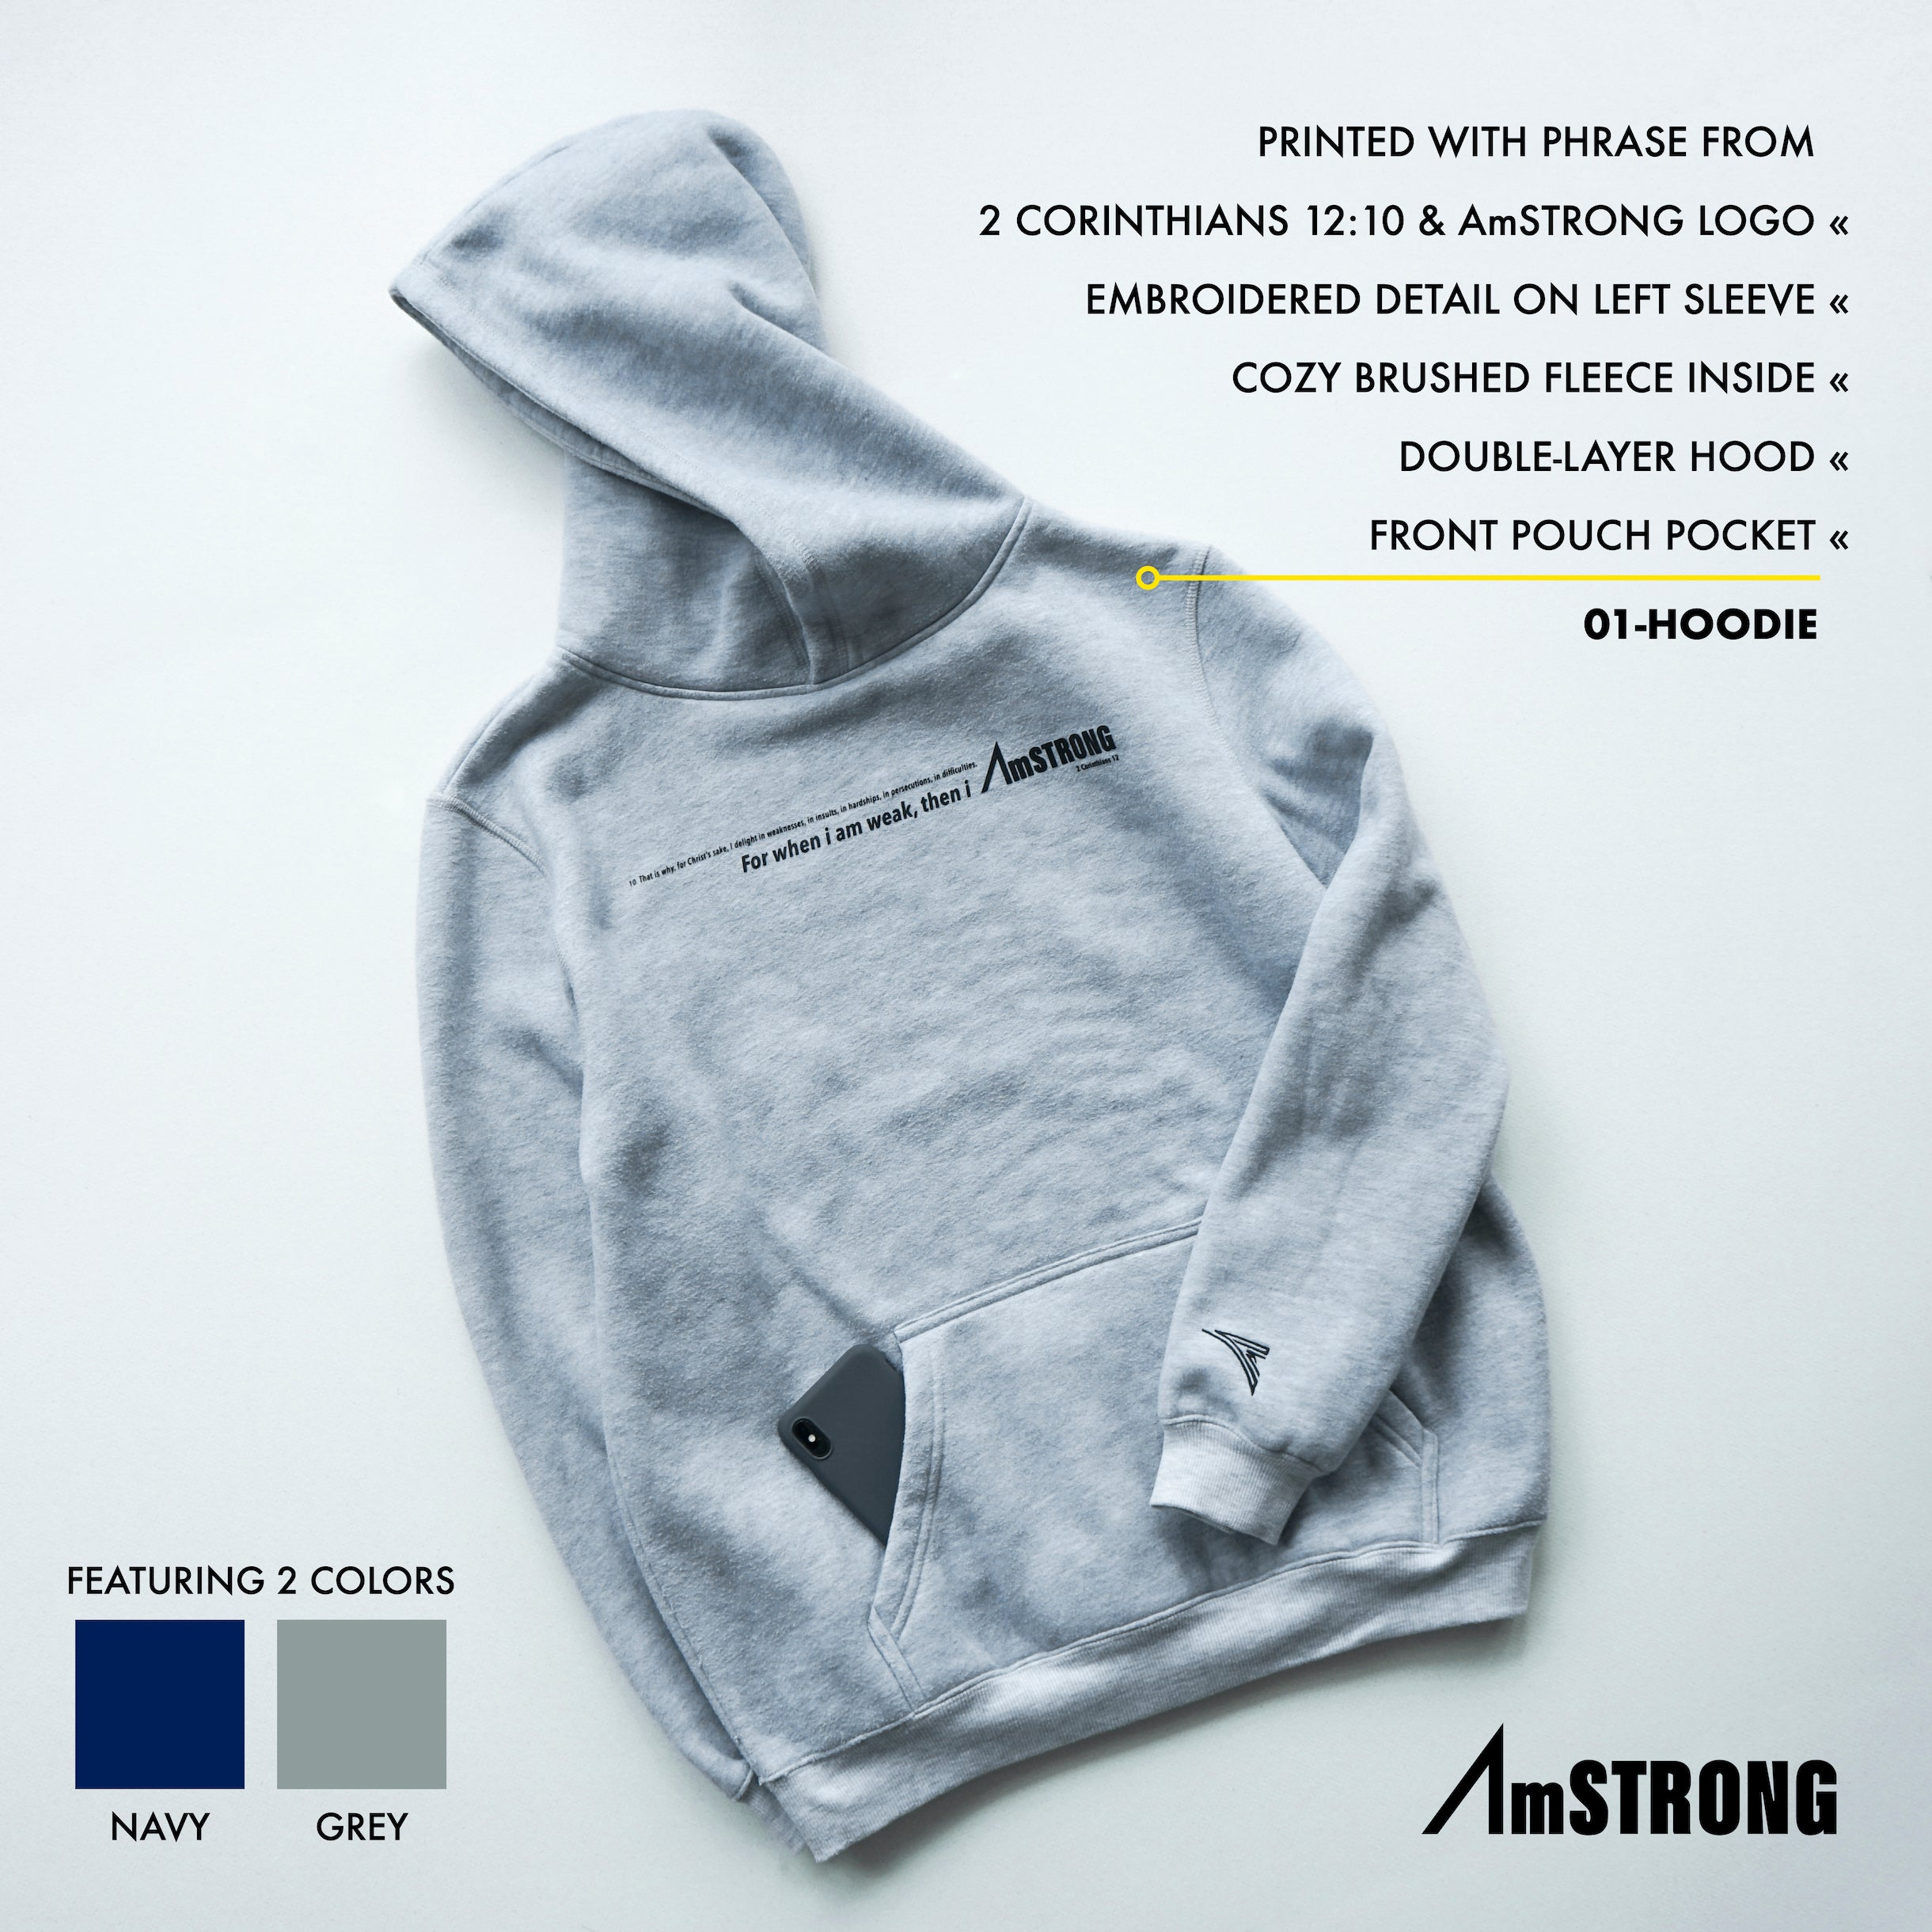 AmSTRONG | 01-HOODIE GREY